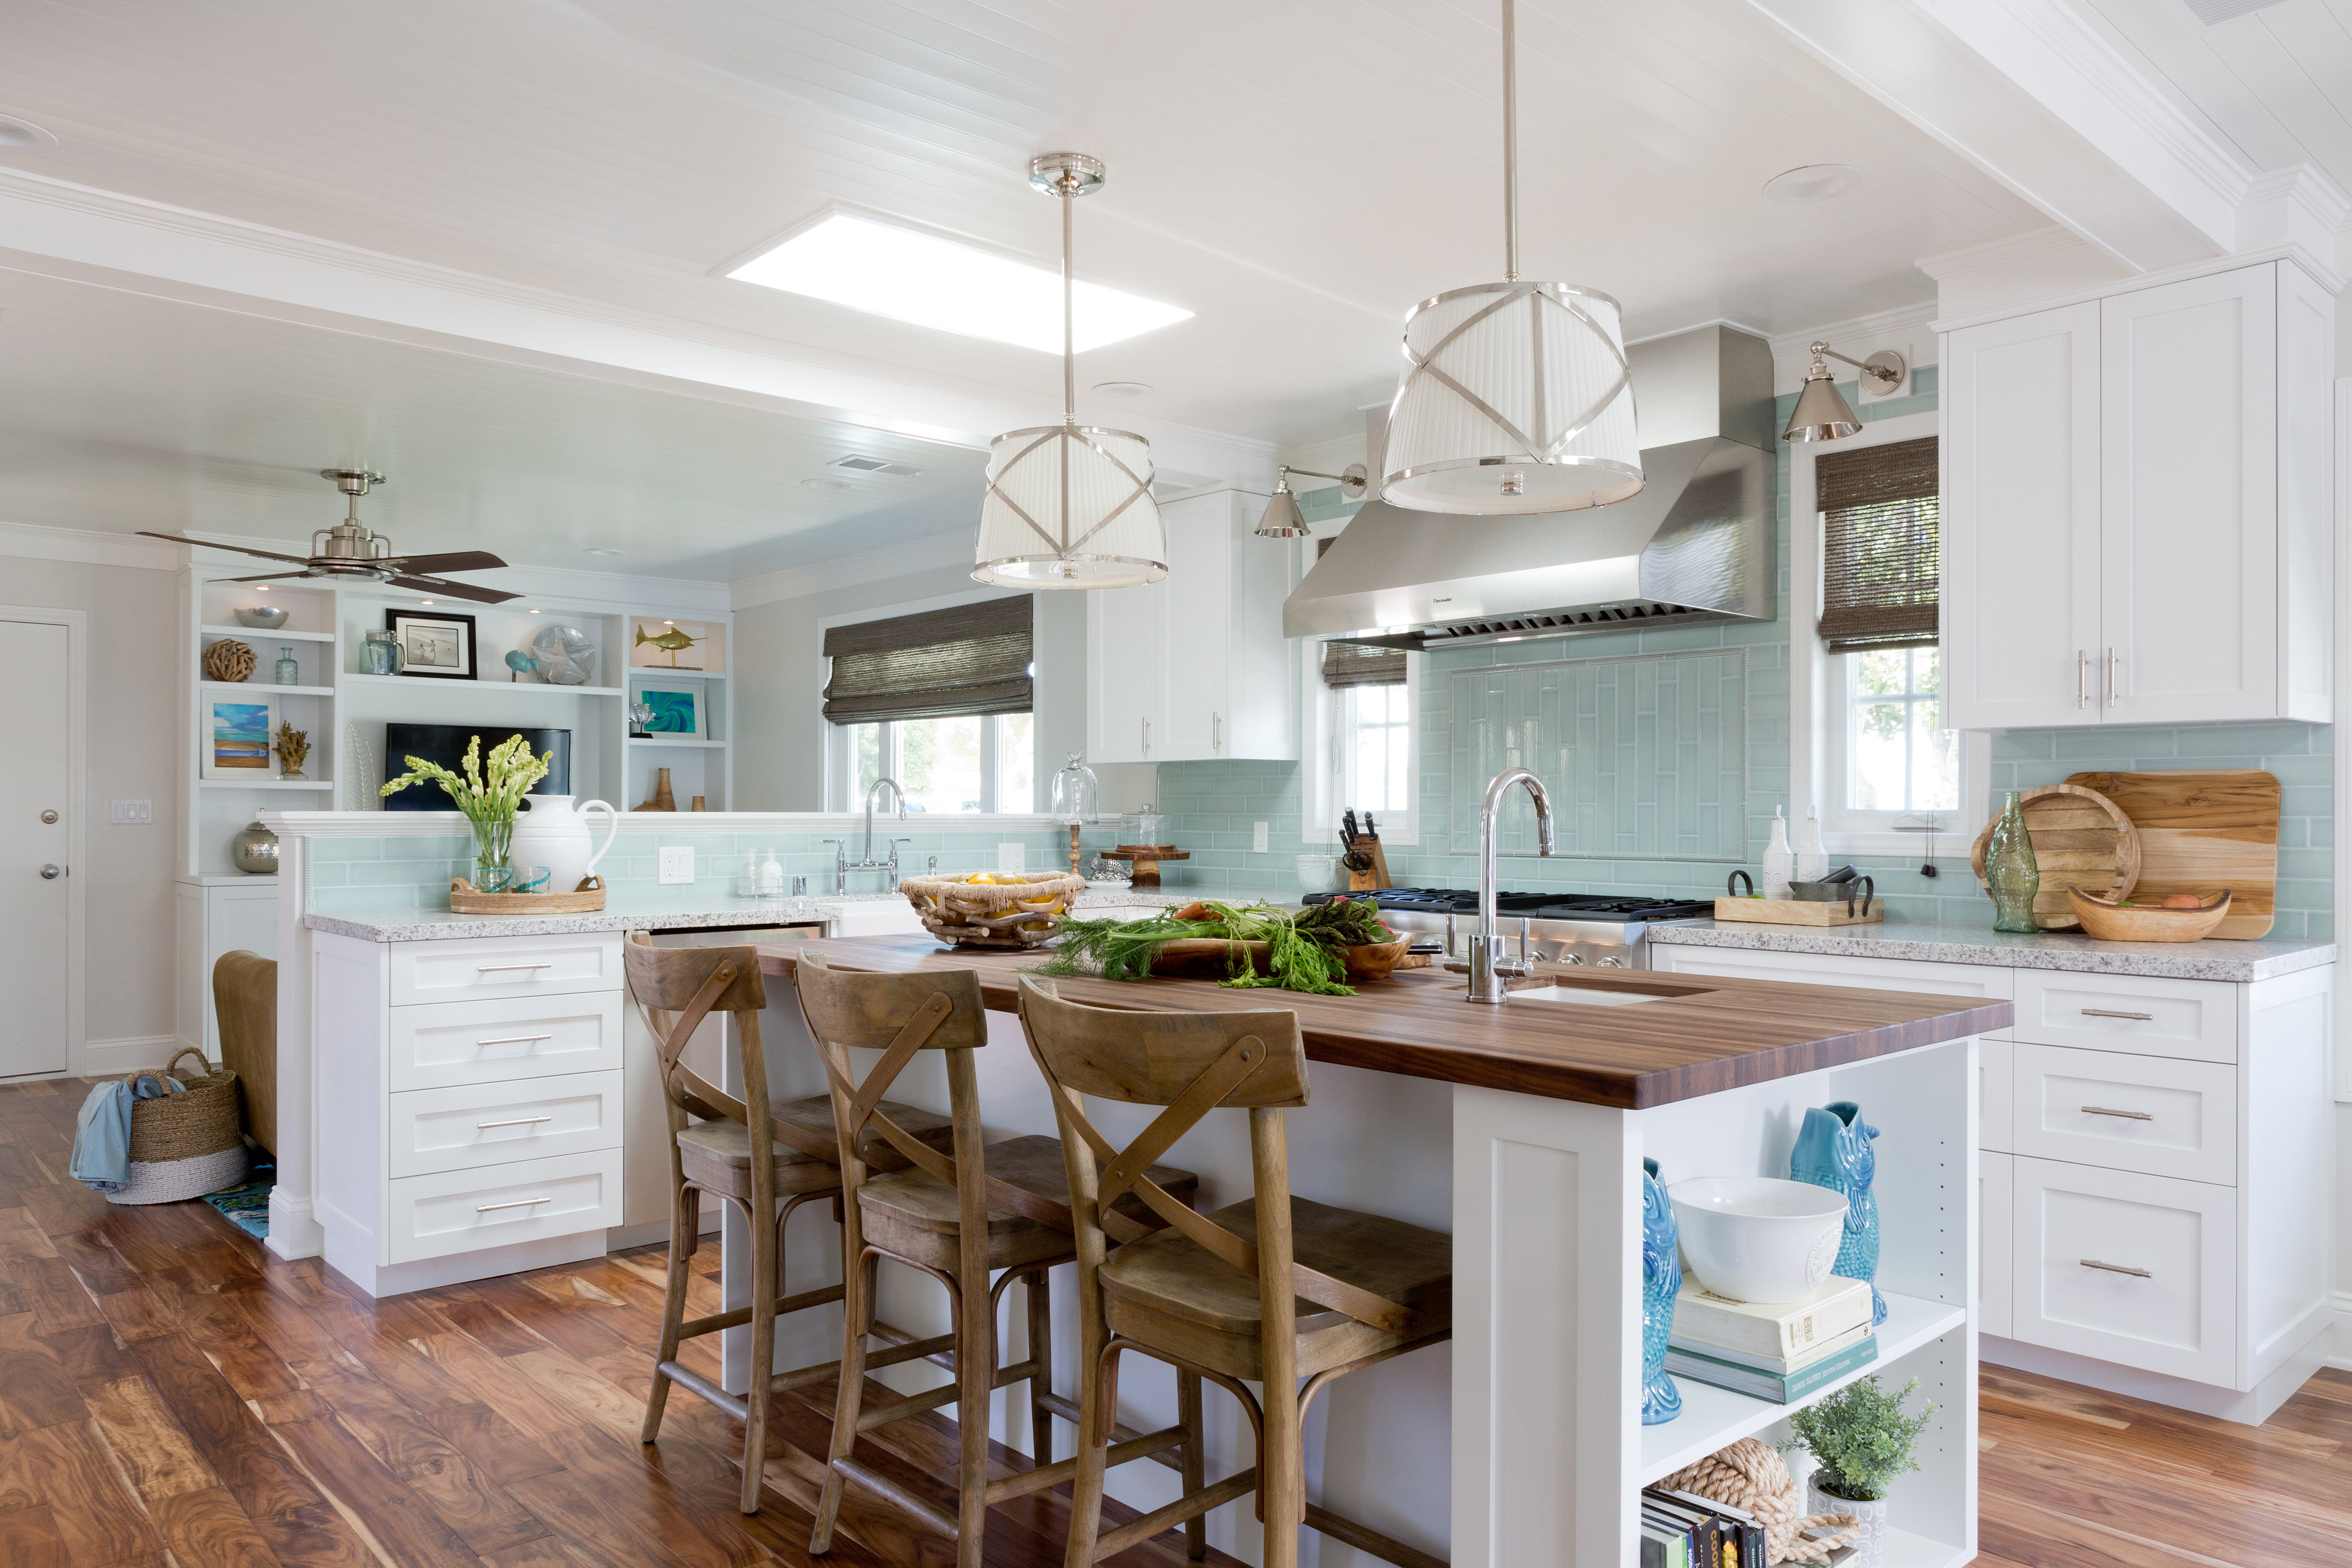 Sisters Interior Designer General Contractor In Los Angeles Manhattan Beach Kitchen